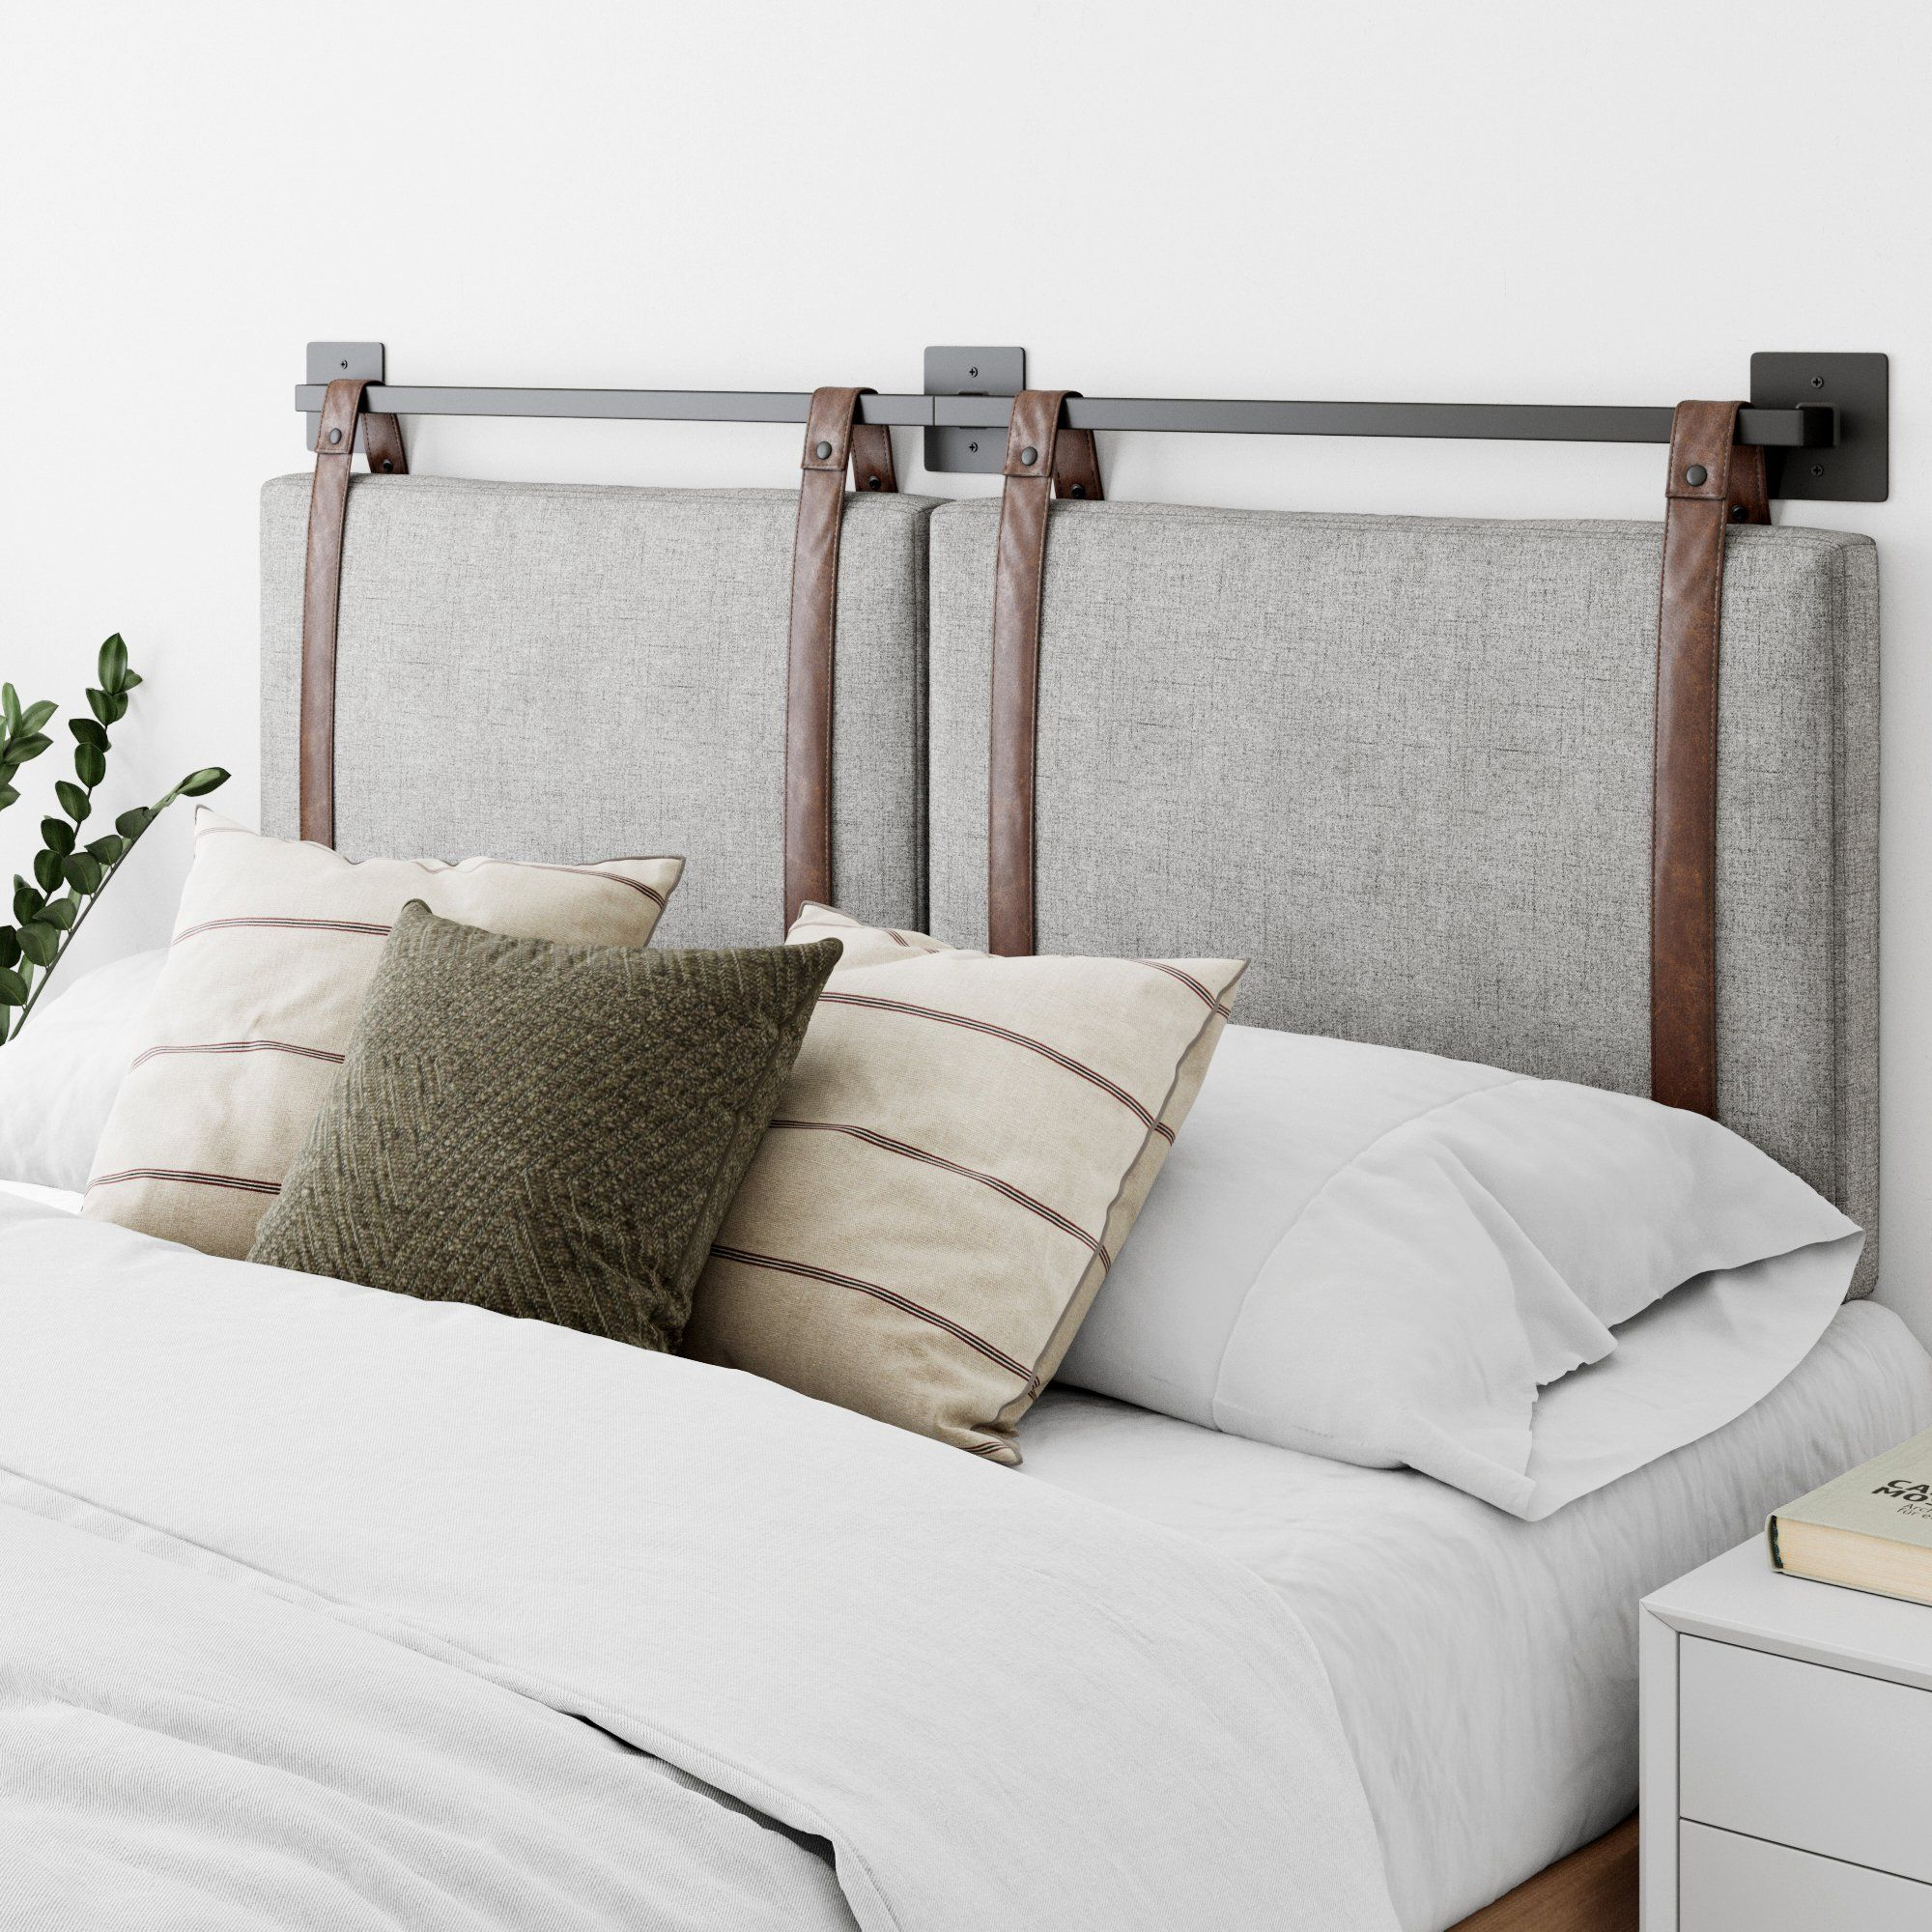 Nathan James Harlow King Wall Mount Headboard Faux Leather Upholstered Headboard Adjustable Height Vintage Brown Pu Leather Straps With Black Matte Metal Rail In 2020 Gray Upholstered Headboard Wall Mounted Headboards